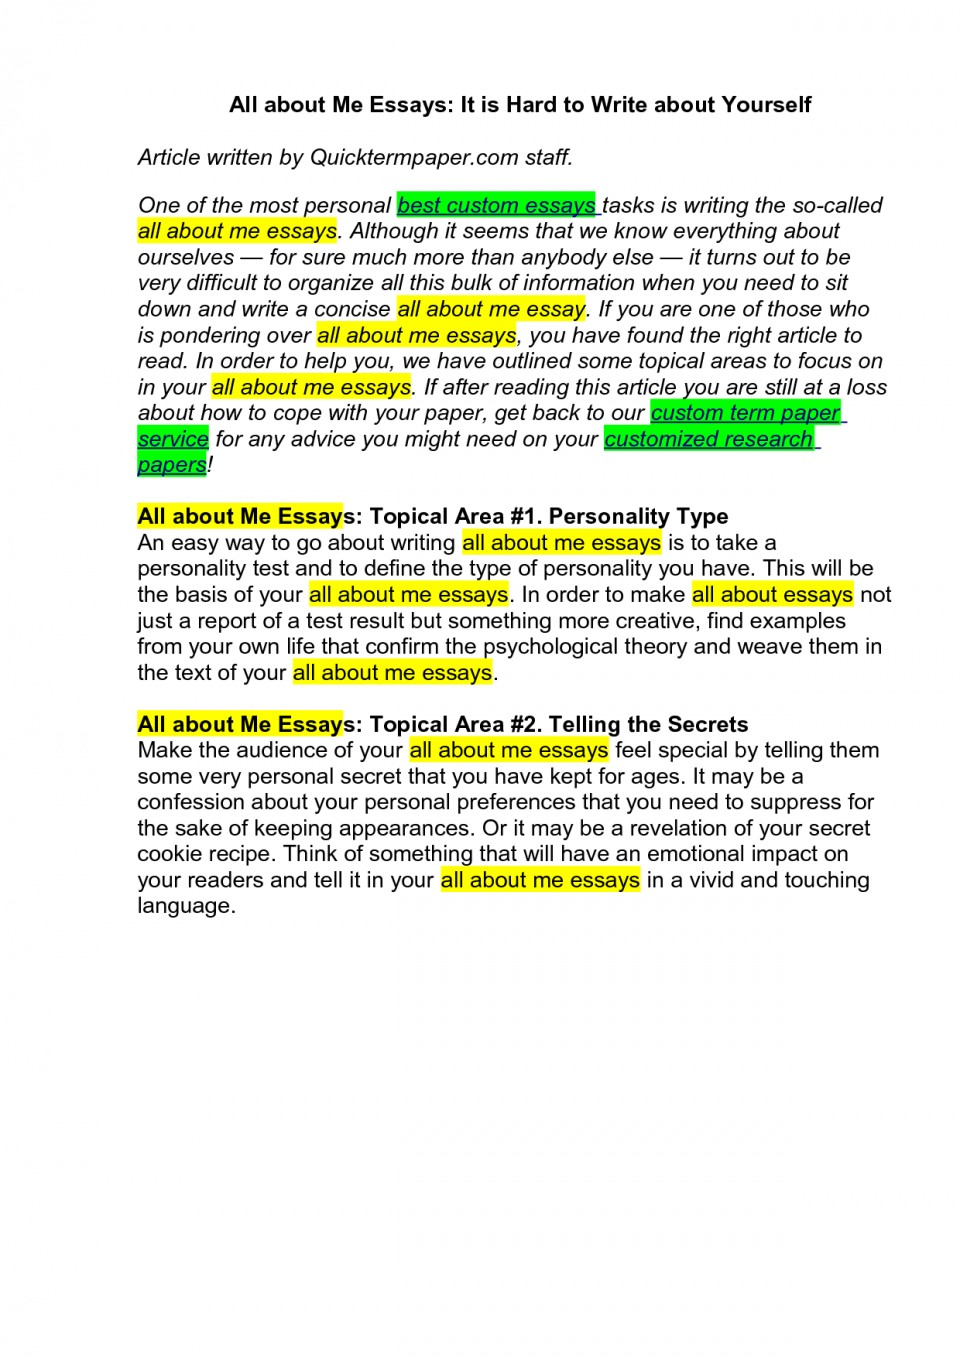 021 Essay Example How To Start An Amazing With A Hook Quote Analysis On Book 960